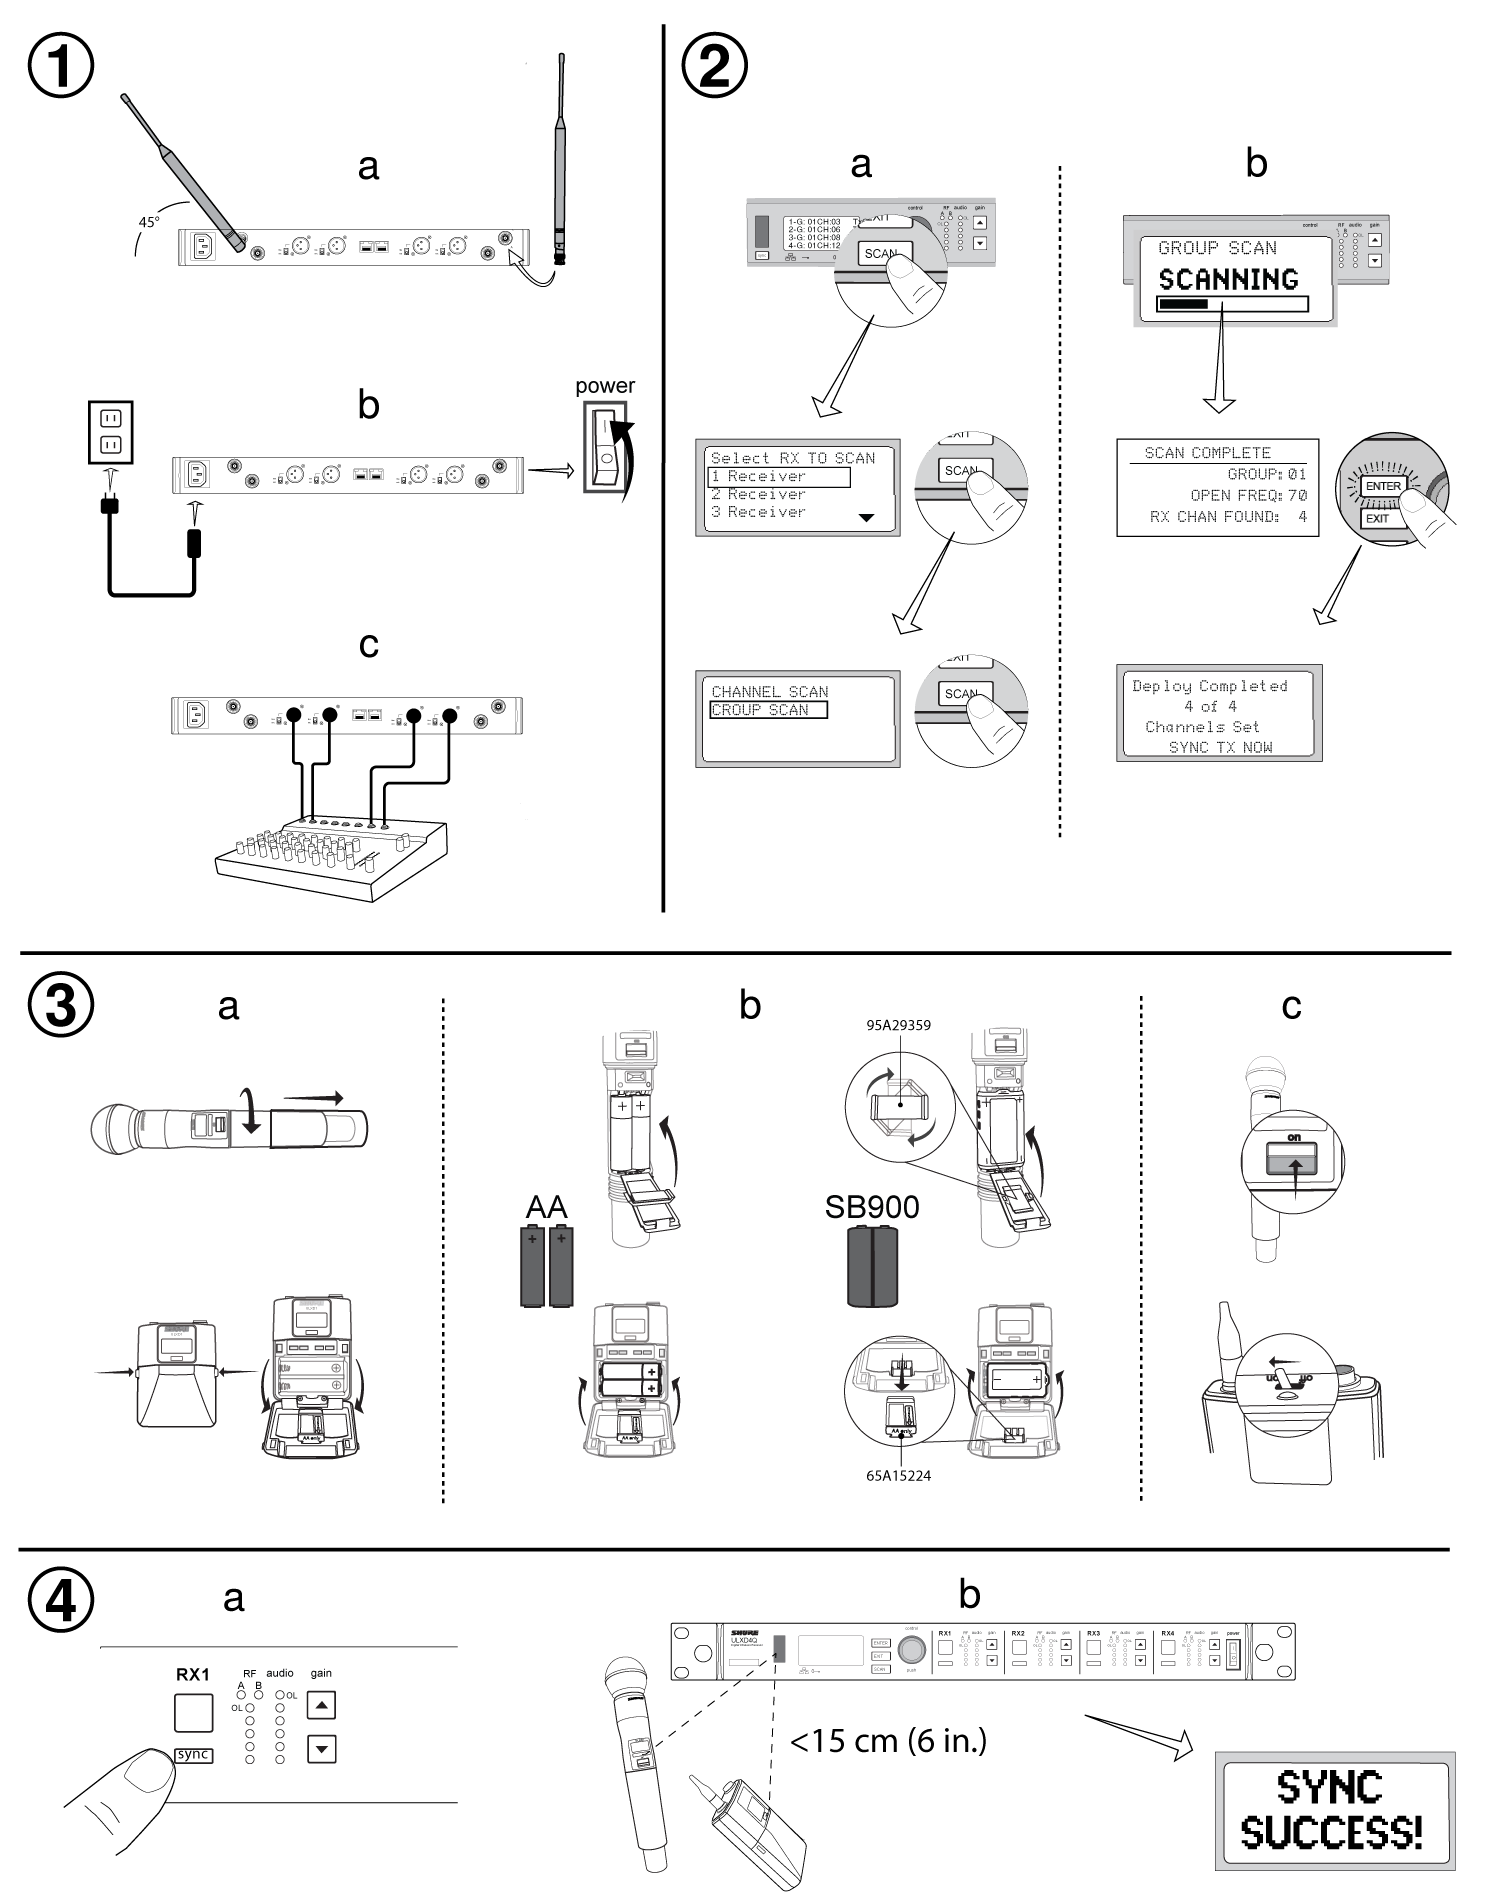 The steps of setting up a receiver and transmitter, scanning, and syncing being performed